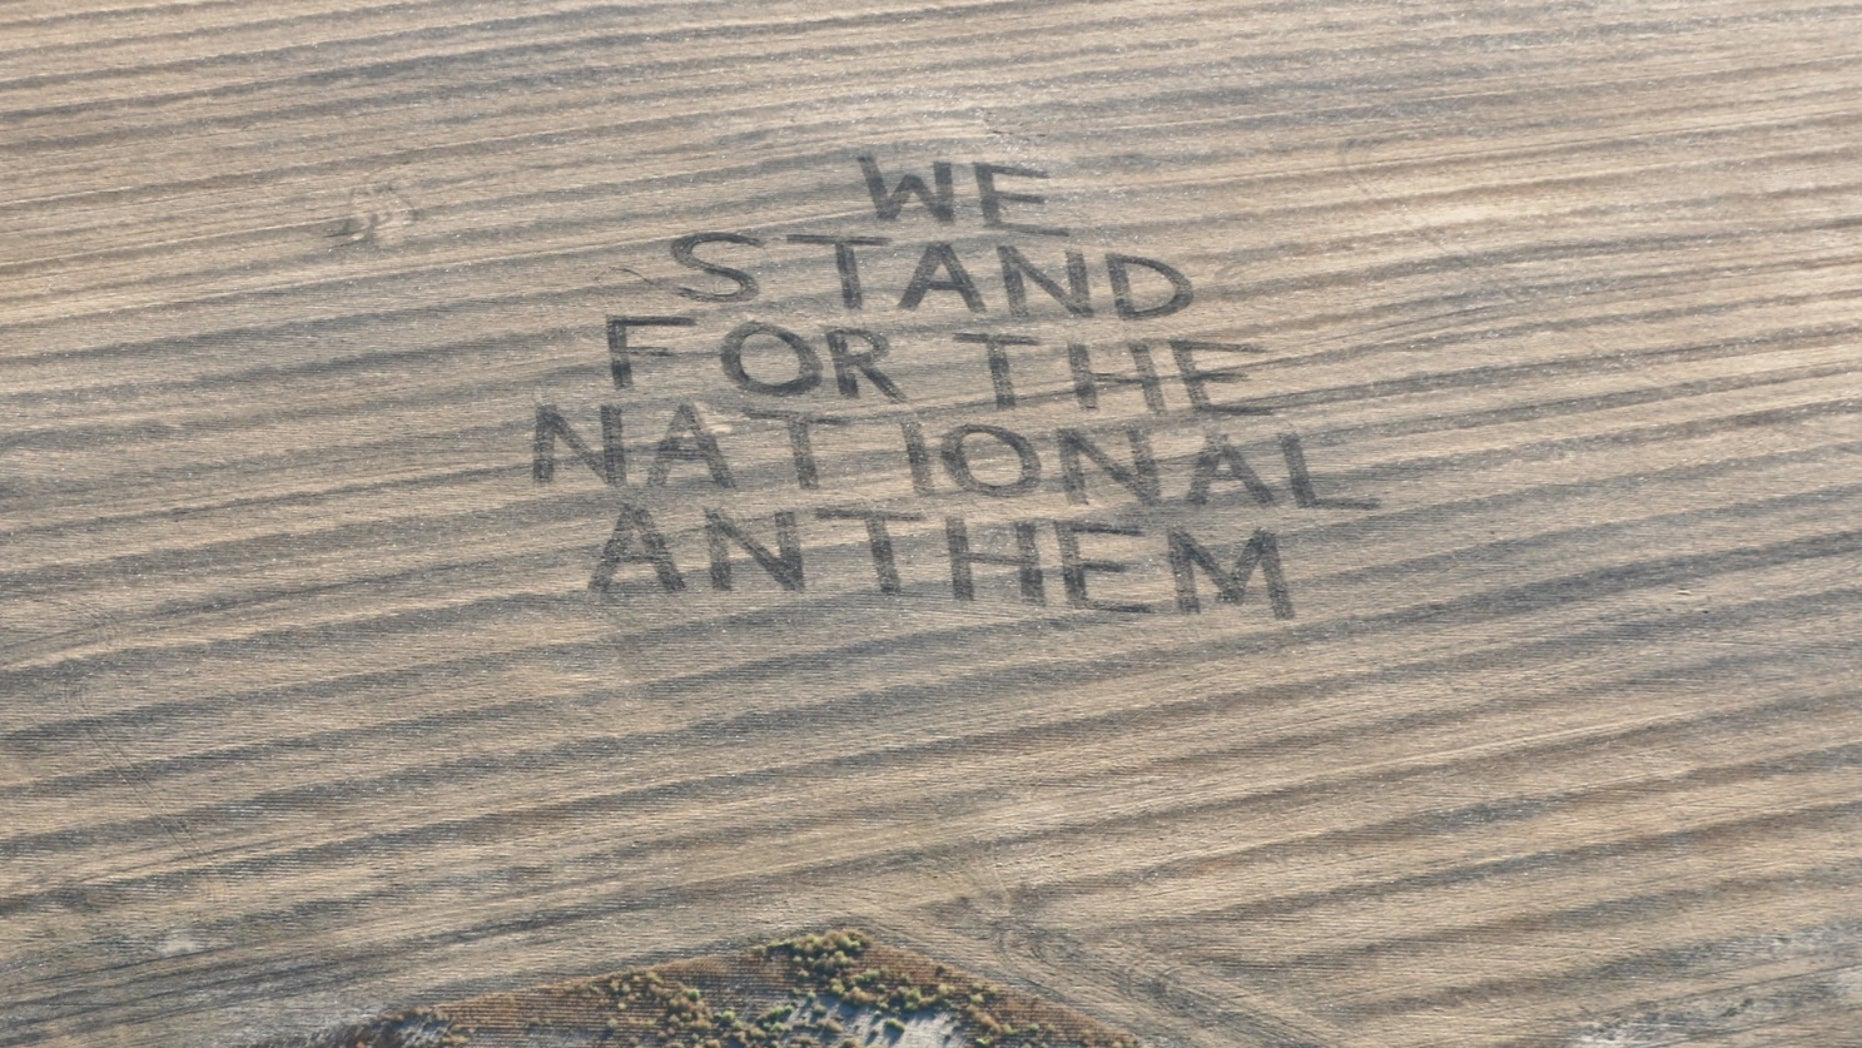 """Farmer Gene Hanson plowed a message for the NFL -- """"We Stand for the National Anthem"""" -- into his field in North Dakota."""